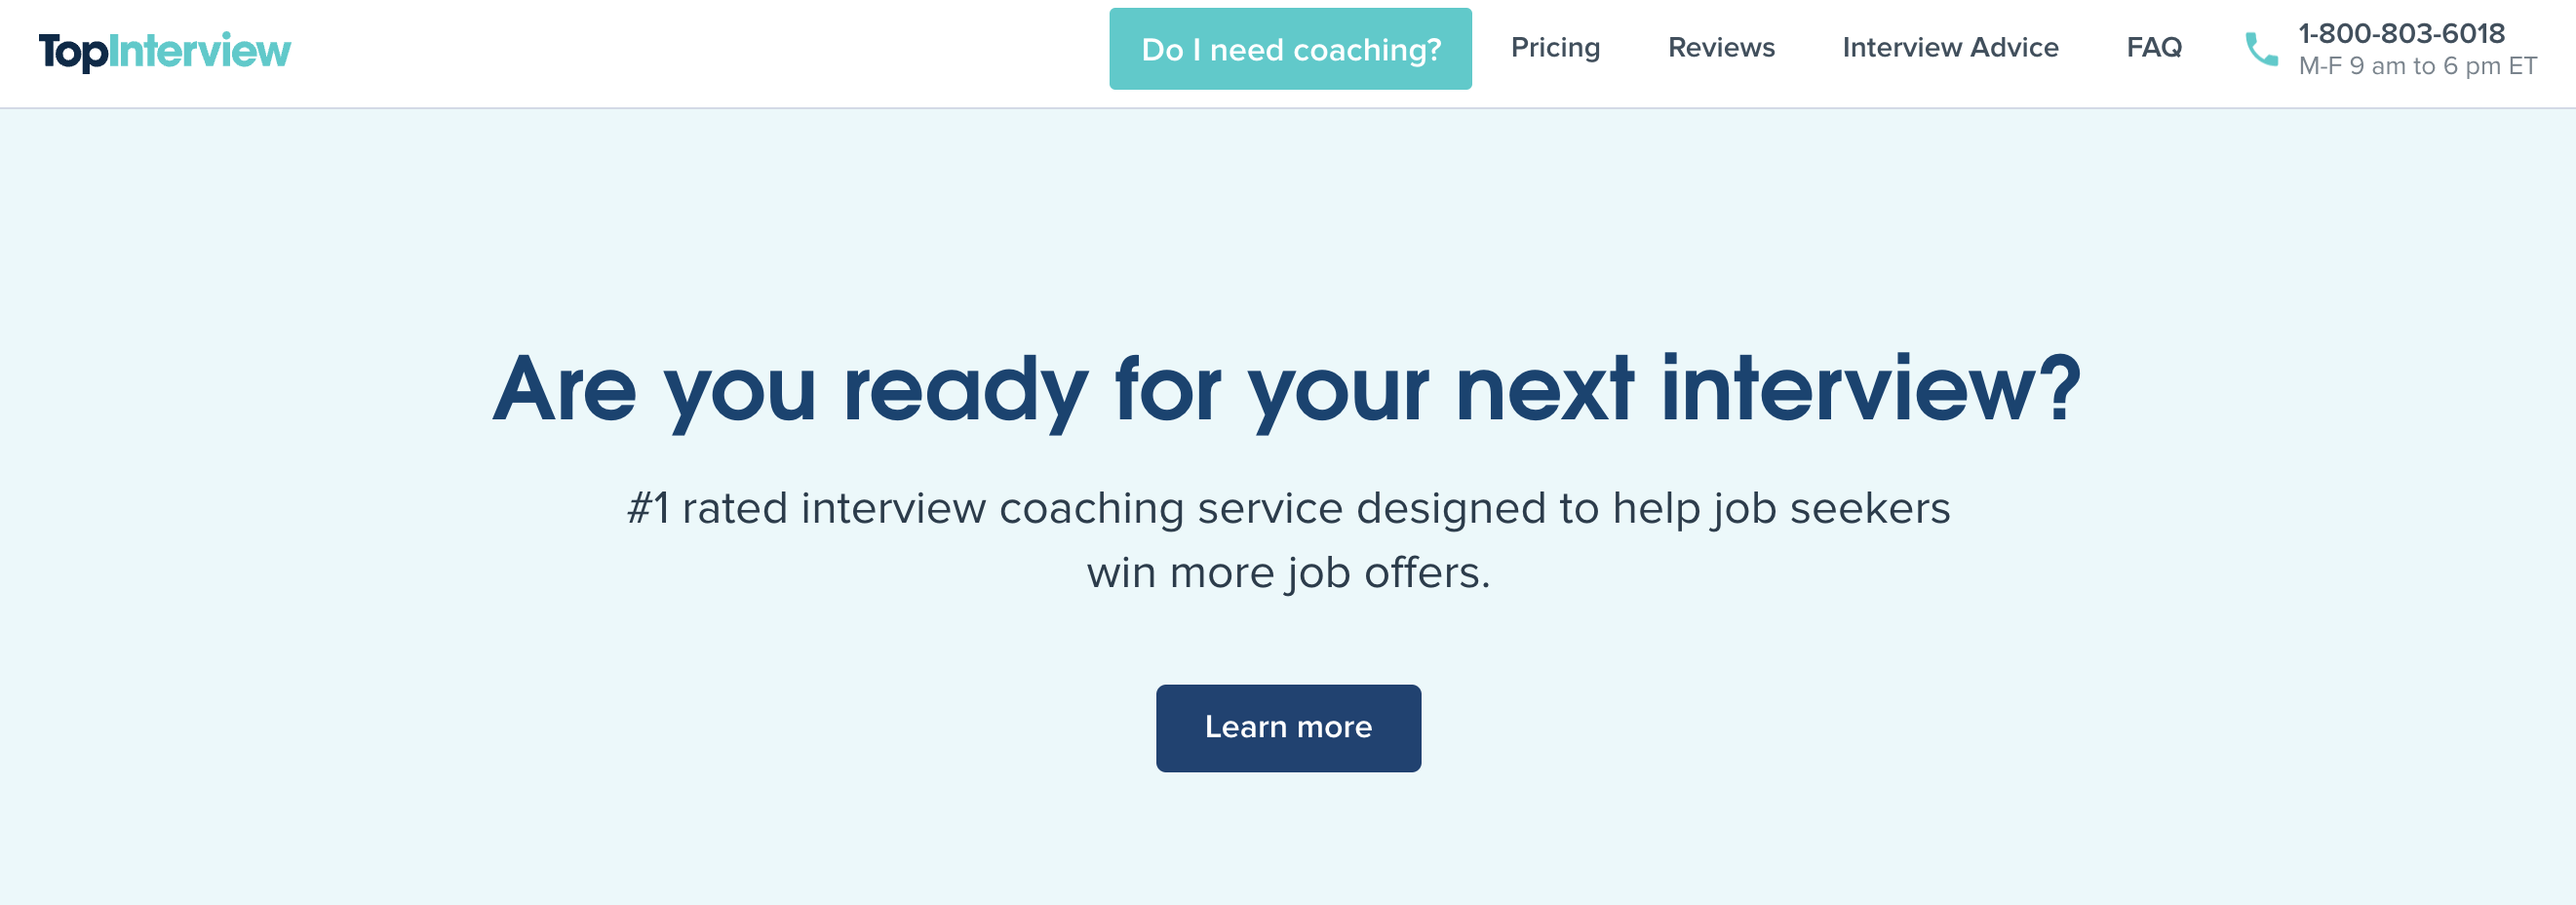 TopInterview Interview Coaching Services